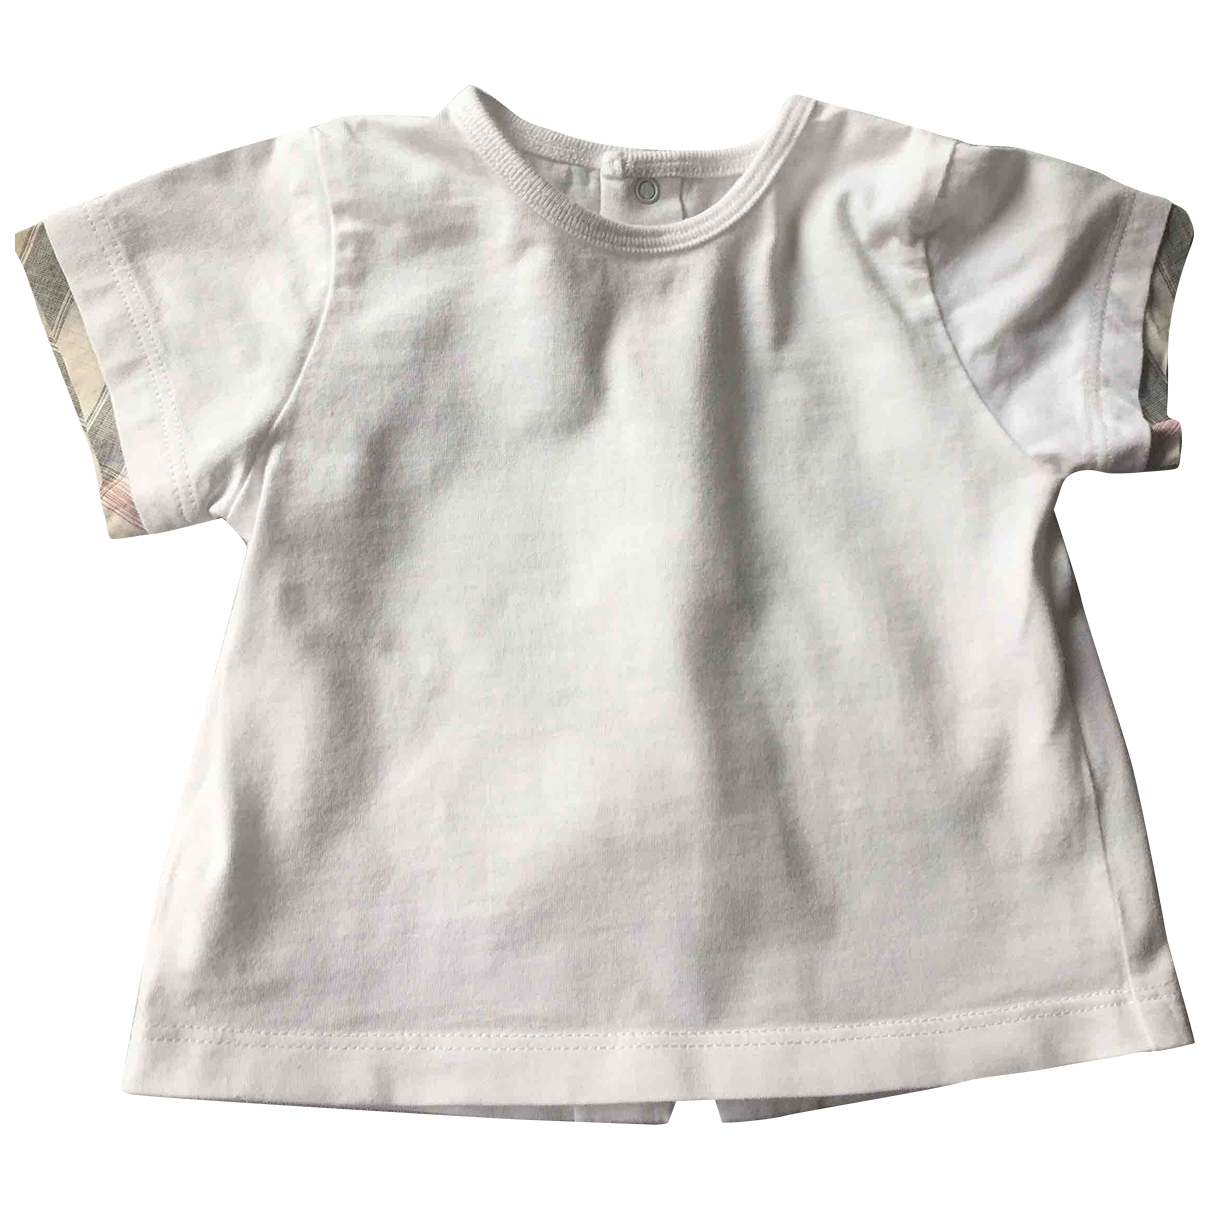 Burberry \N White Cotton  top for Kids 3 months - up to 60cm FR